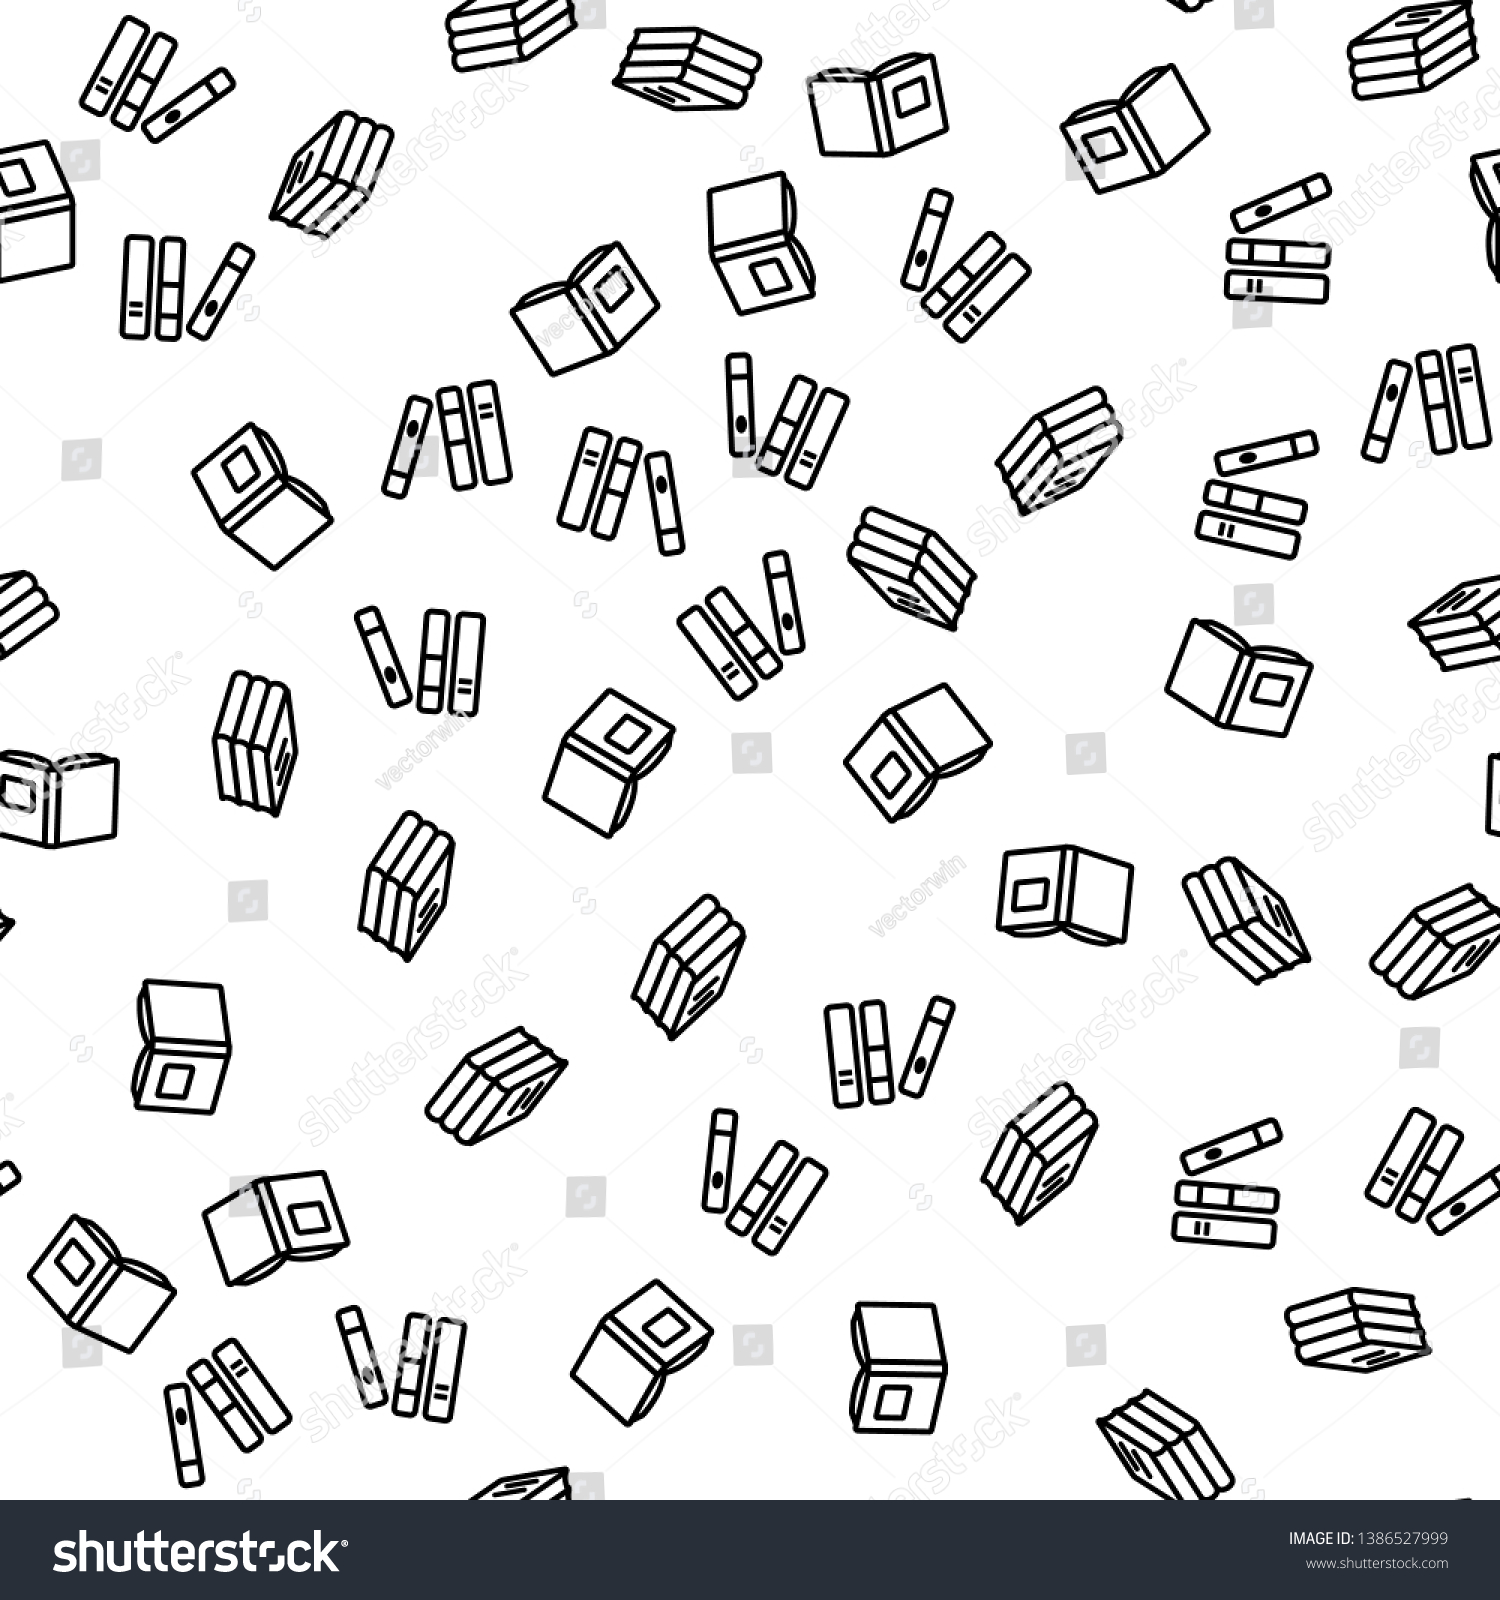 Library Book Dictionary Seamless Pattern Vector Stock Vector (Royalty Free)  1386527999